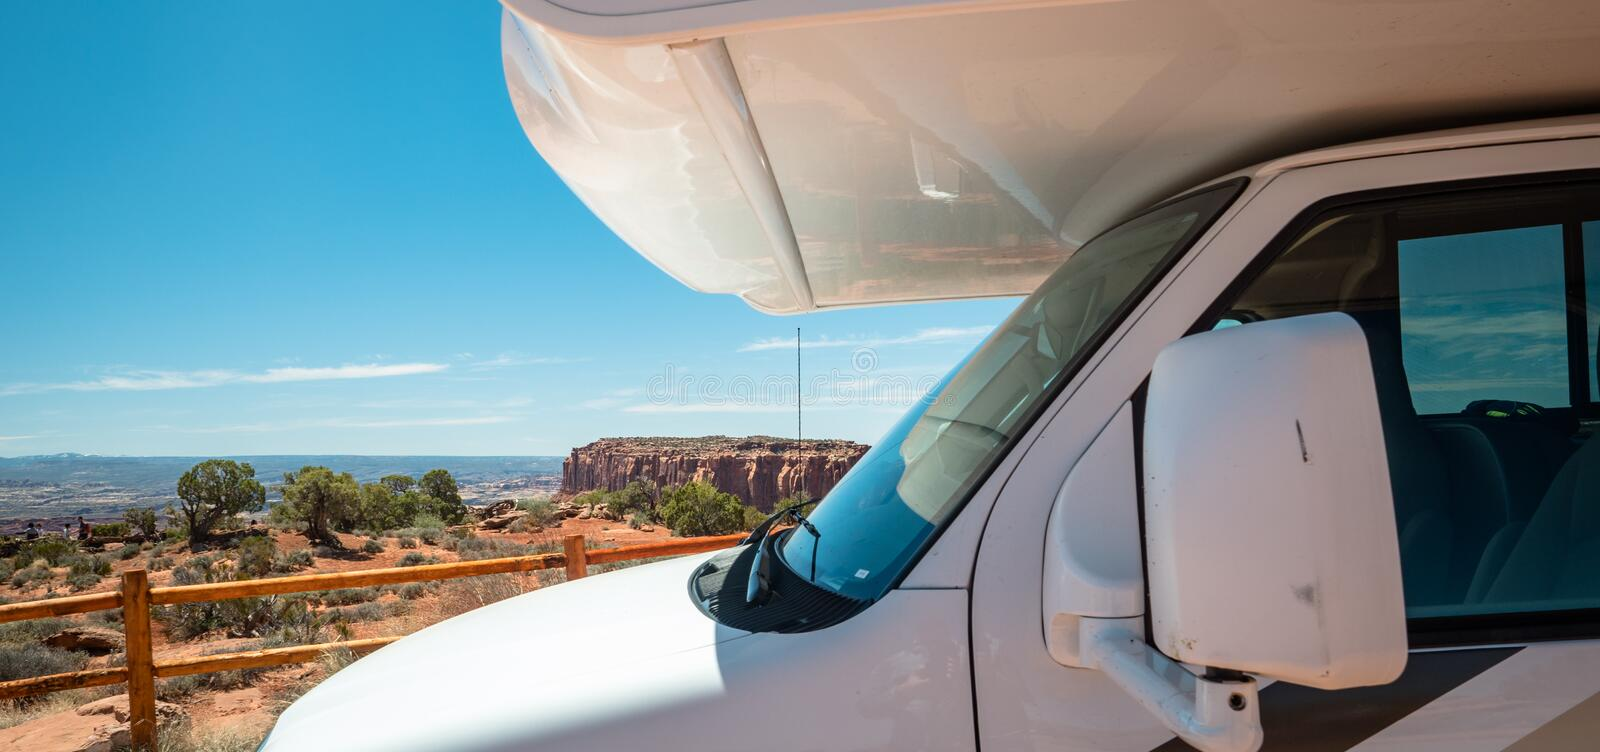 RV Motorhome parking with grand canyon views royalty free stock photo